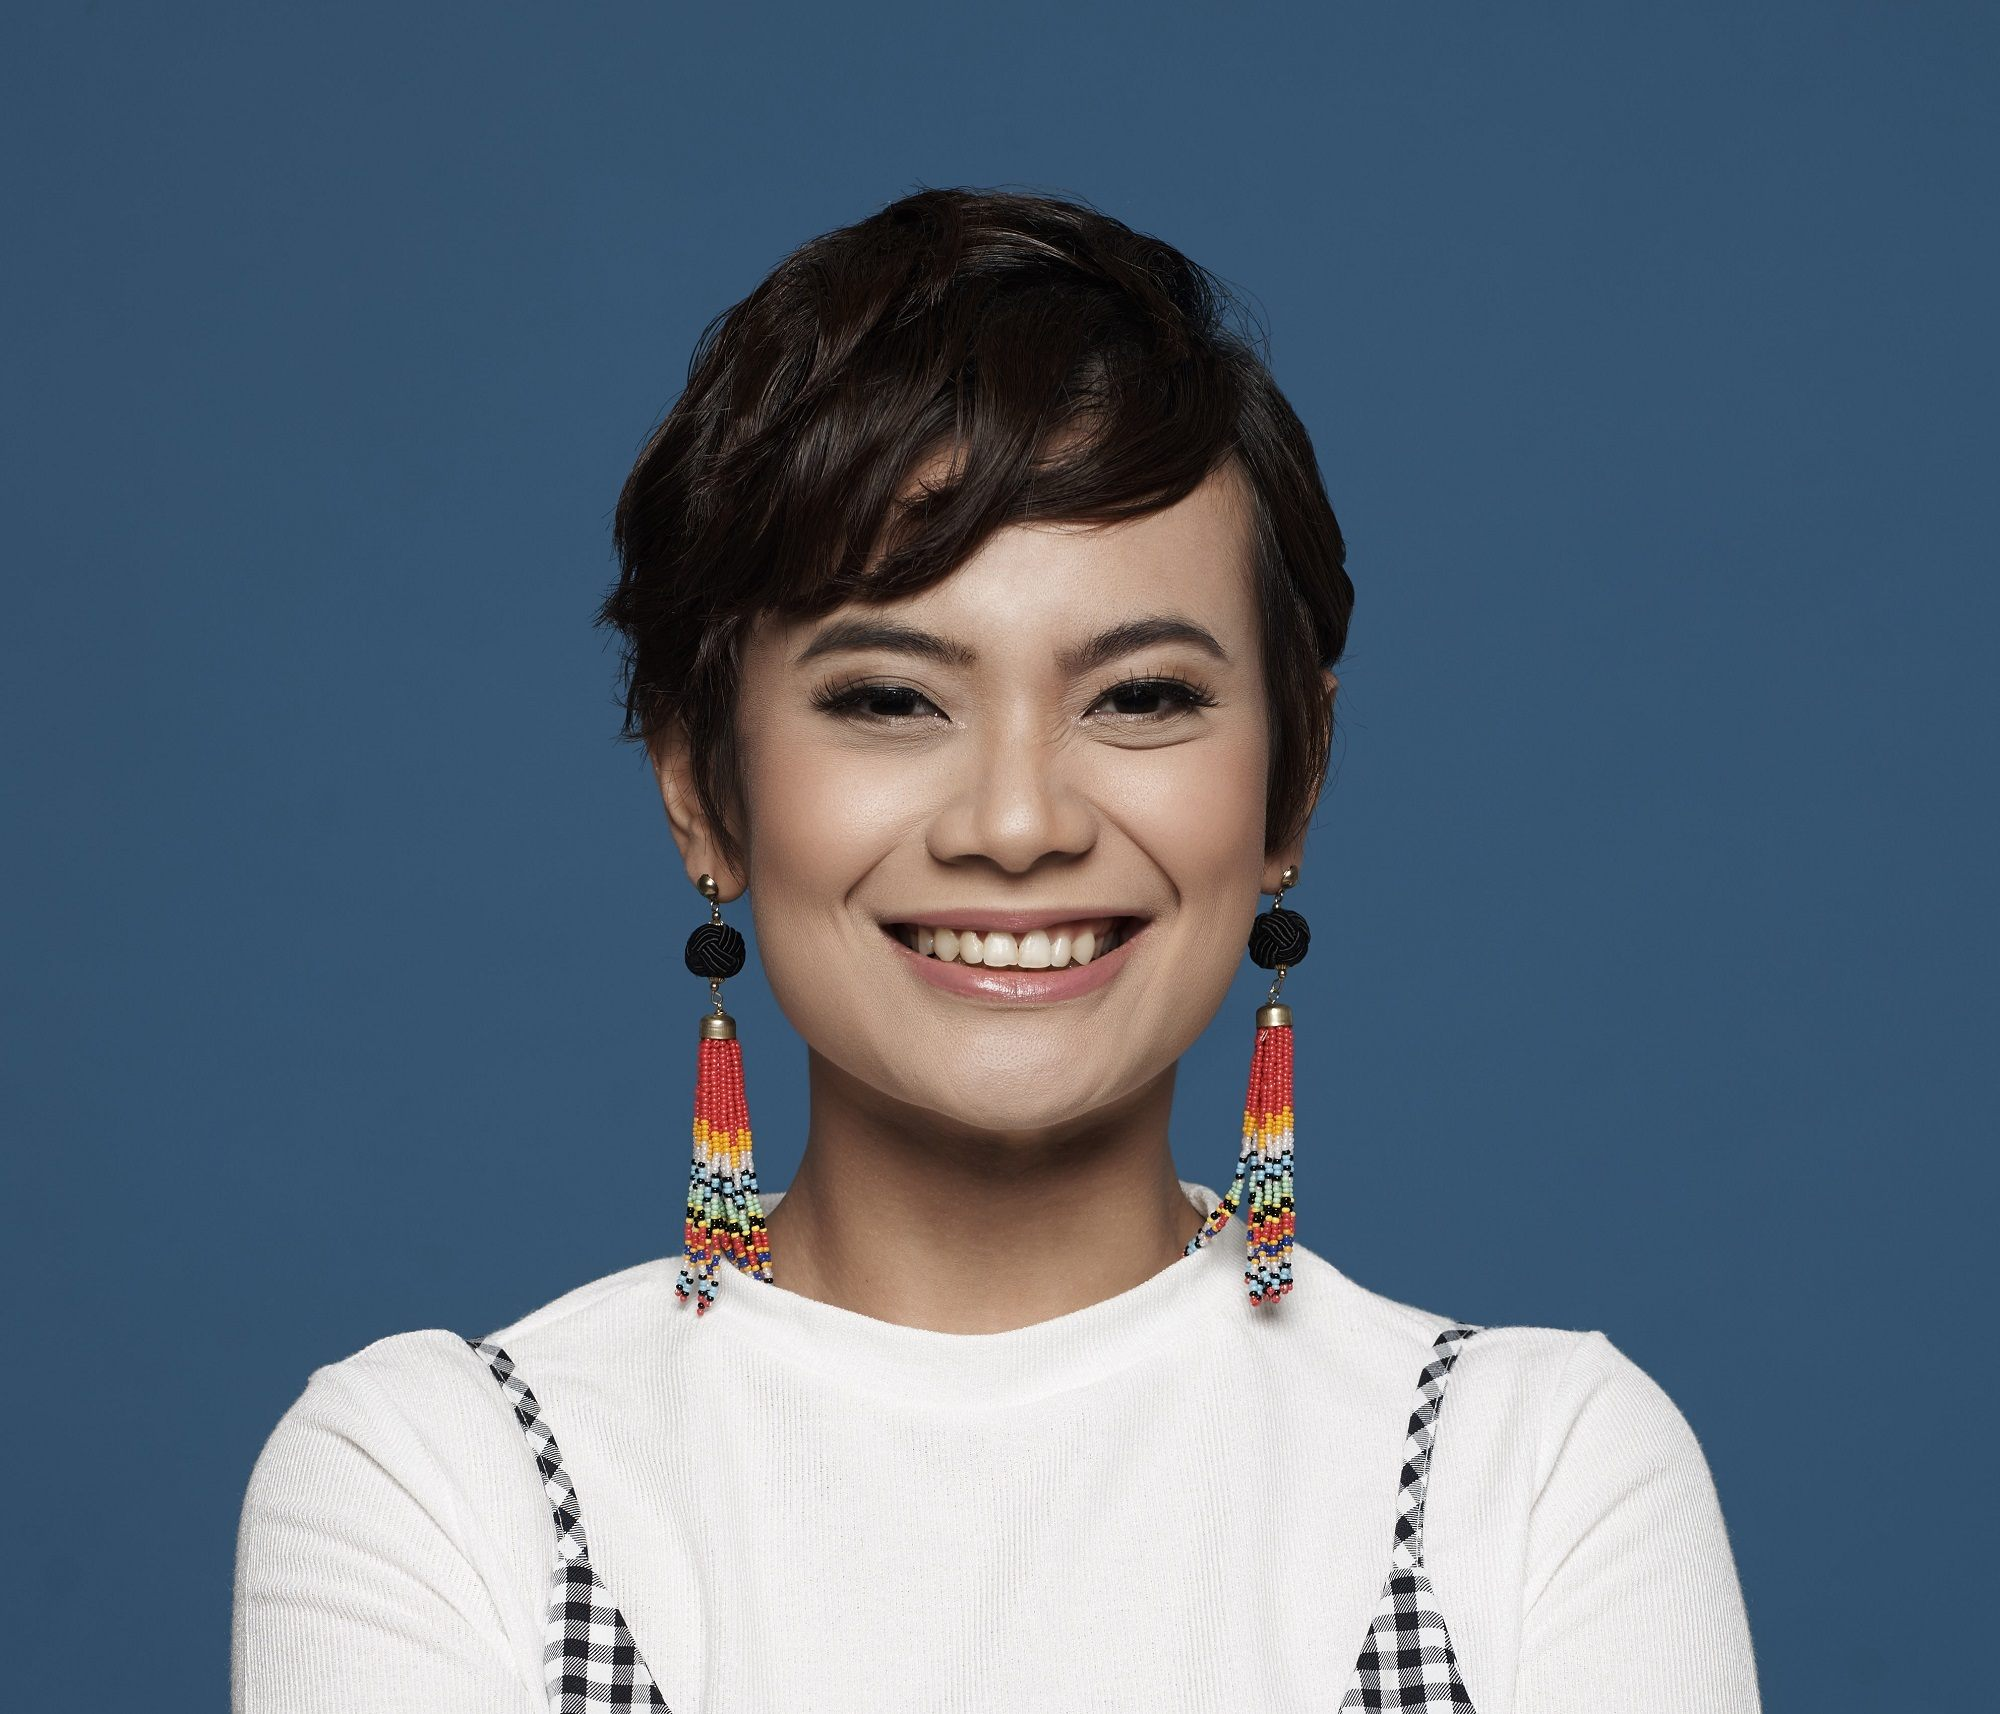 Hair trends to try in 2019: Closeup shot of an Asian woman with dark tousled pixie cut and dangling earrings